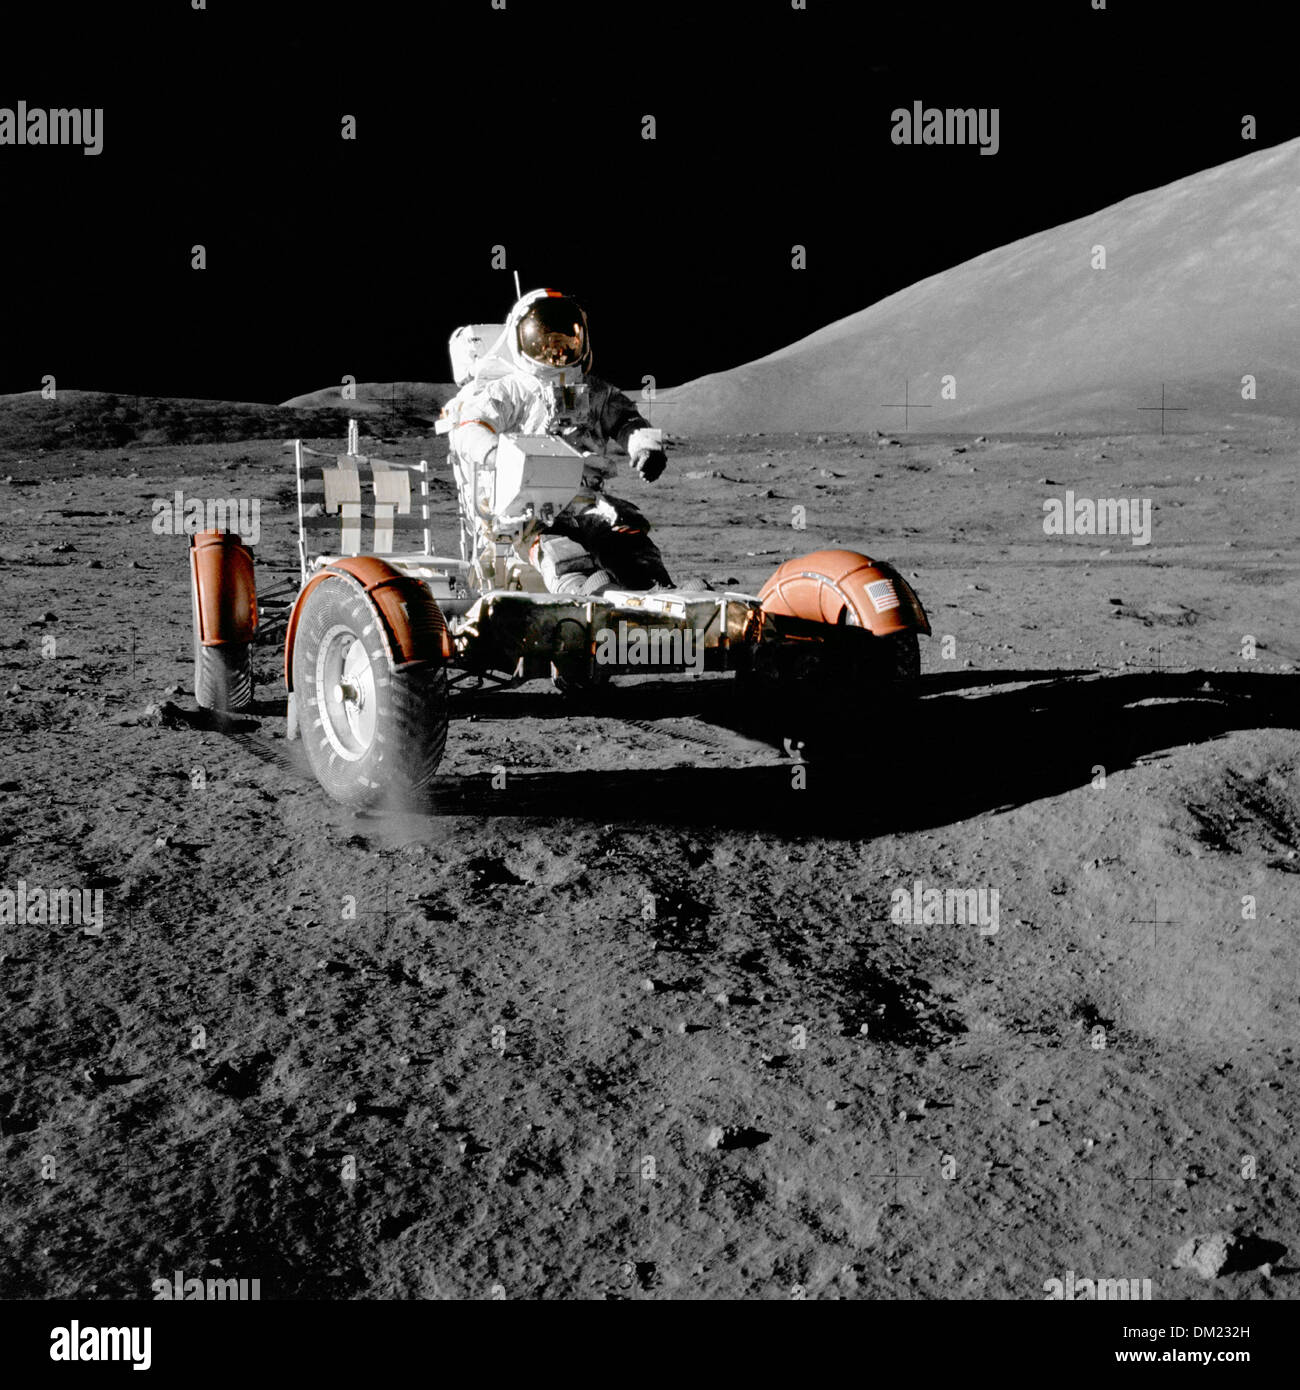 NASA Apollo 17 Astronaut and Mission Commander Eugene Cernan aboard the Lunar Rover during the first EVA of the mission on the lunar surface December 11, 1972. Apollo 17 was at the final expedition to the moon for the space program. - Stock Image